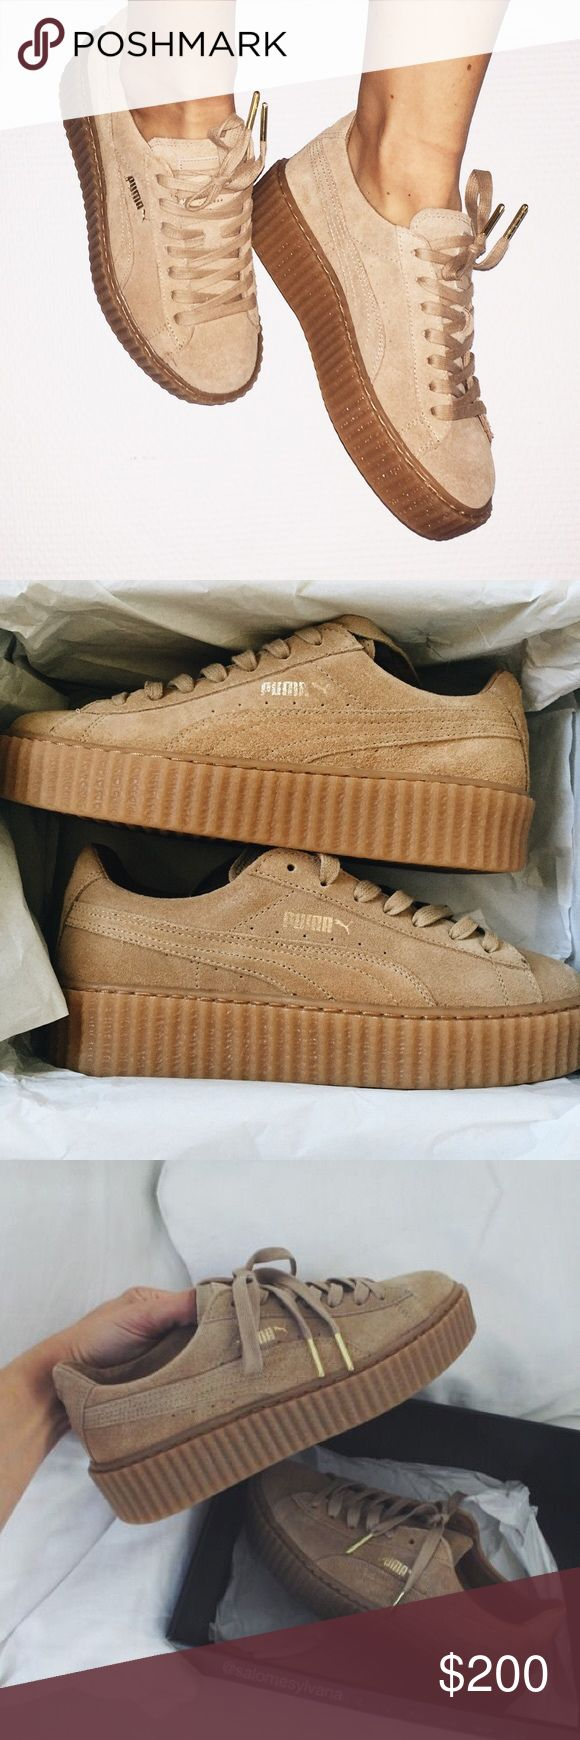 Rihanna Fenty Puma Creepers -size 8 in women's These are Rihanna's Fenty Puma Creepers! Size 8 in women's! These are a great catch she only restocks once a year and they sell out FAST!! Puma Shoes Platforms